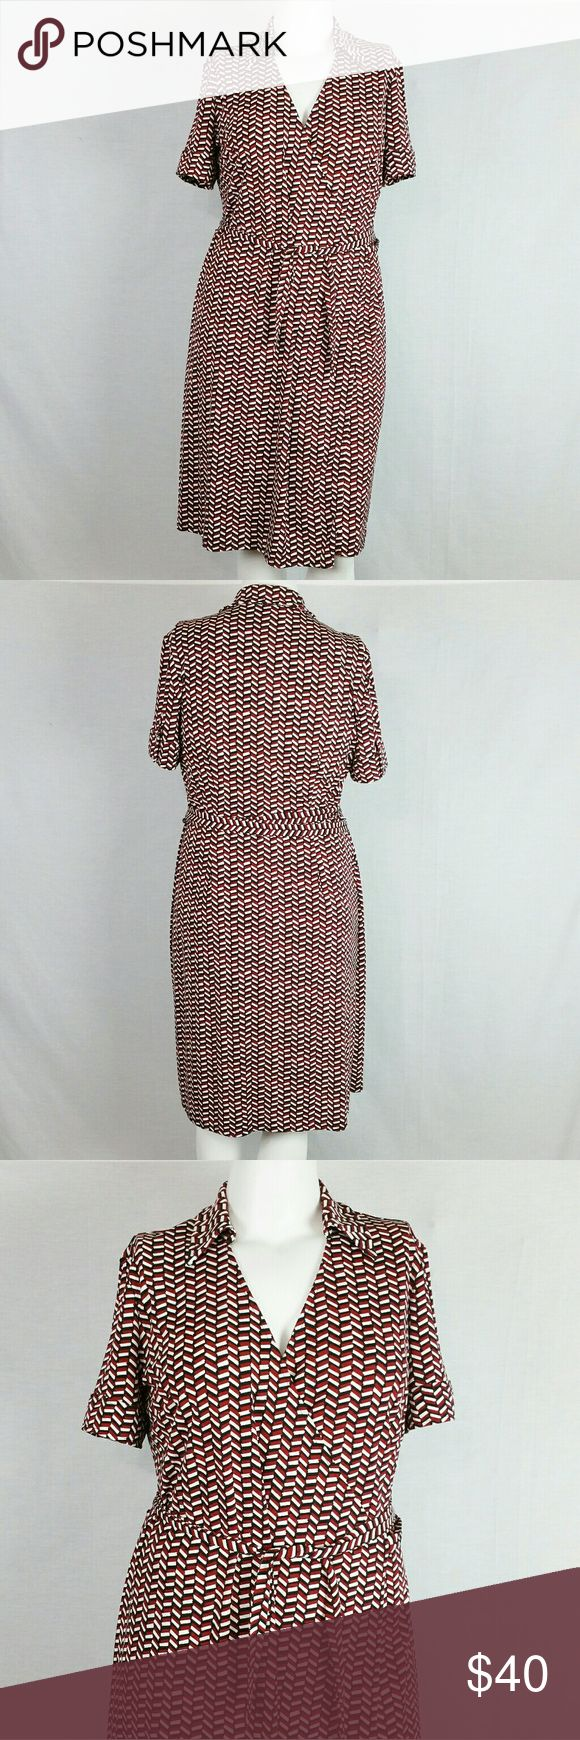 "LOFT Red Black Geo Print Wrap Dress Size 14 In excellent condition (worn once). Bust: 42"" & lenth 39"". 100% polyester. Add to a bundle to receive 20% off 3 or more items. Offers welcomed. bin p. LOFT Dresses"